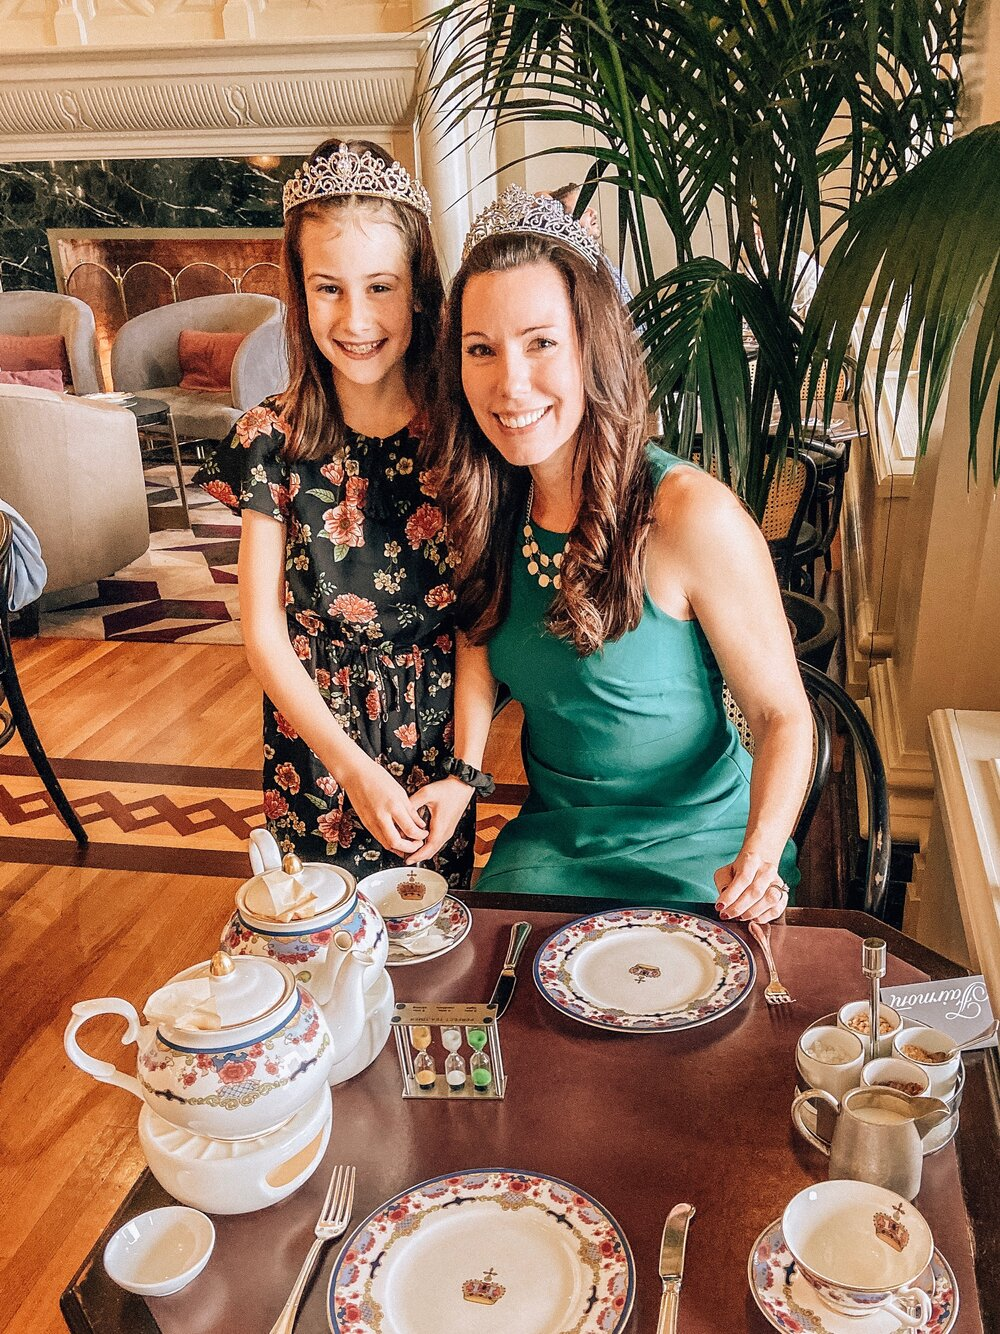 Children's Afternoon Tea at the Empress princess